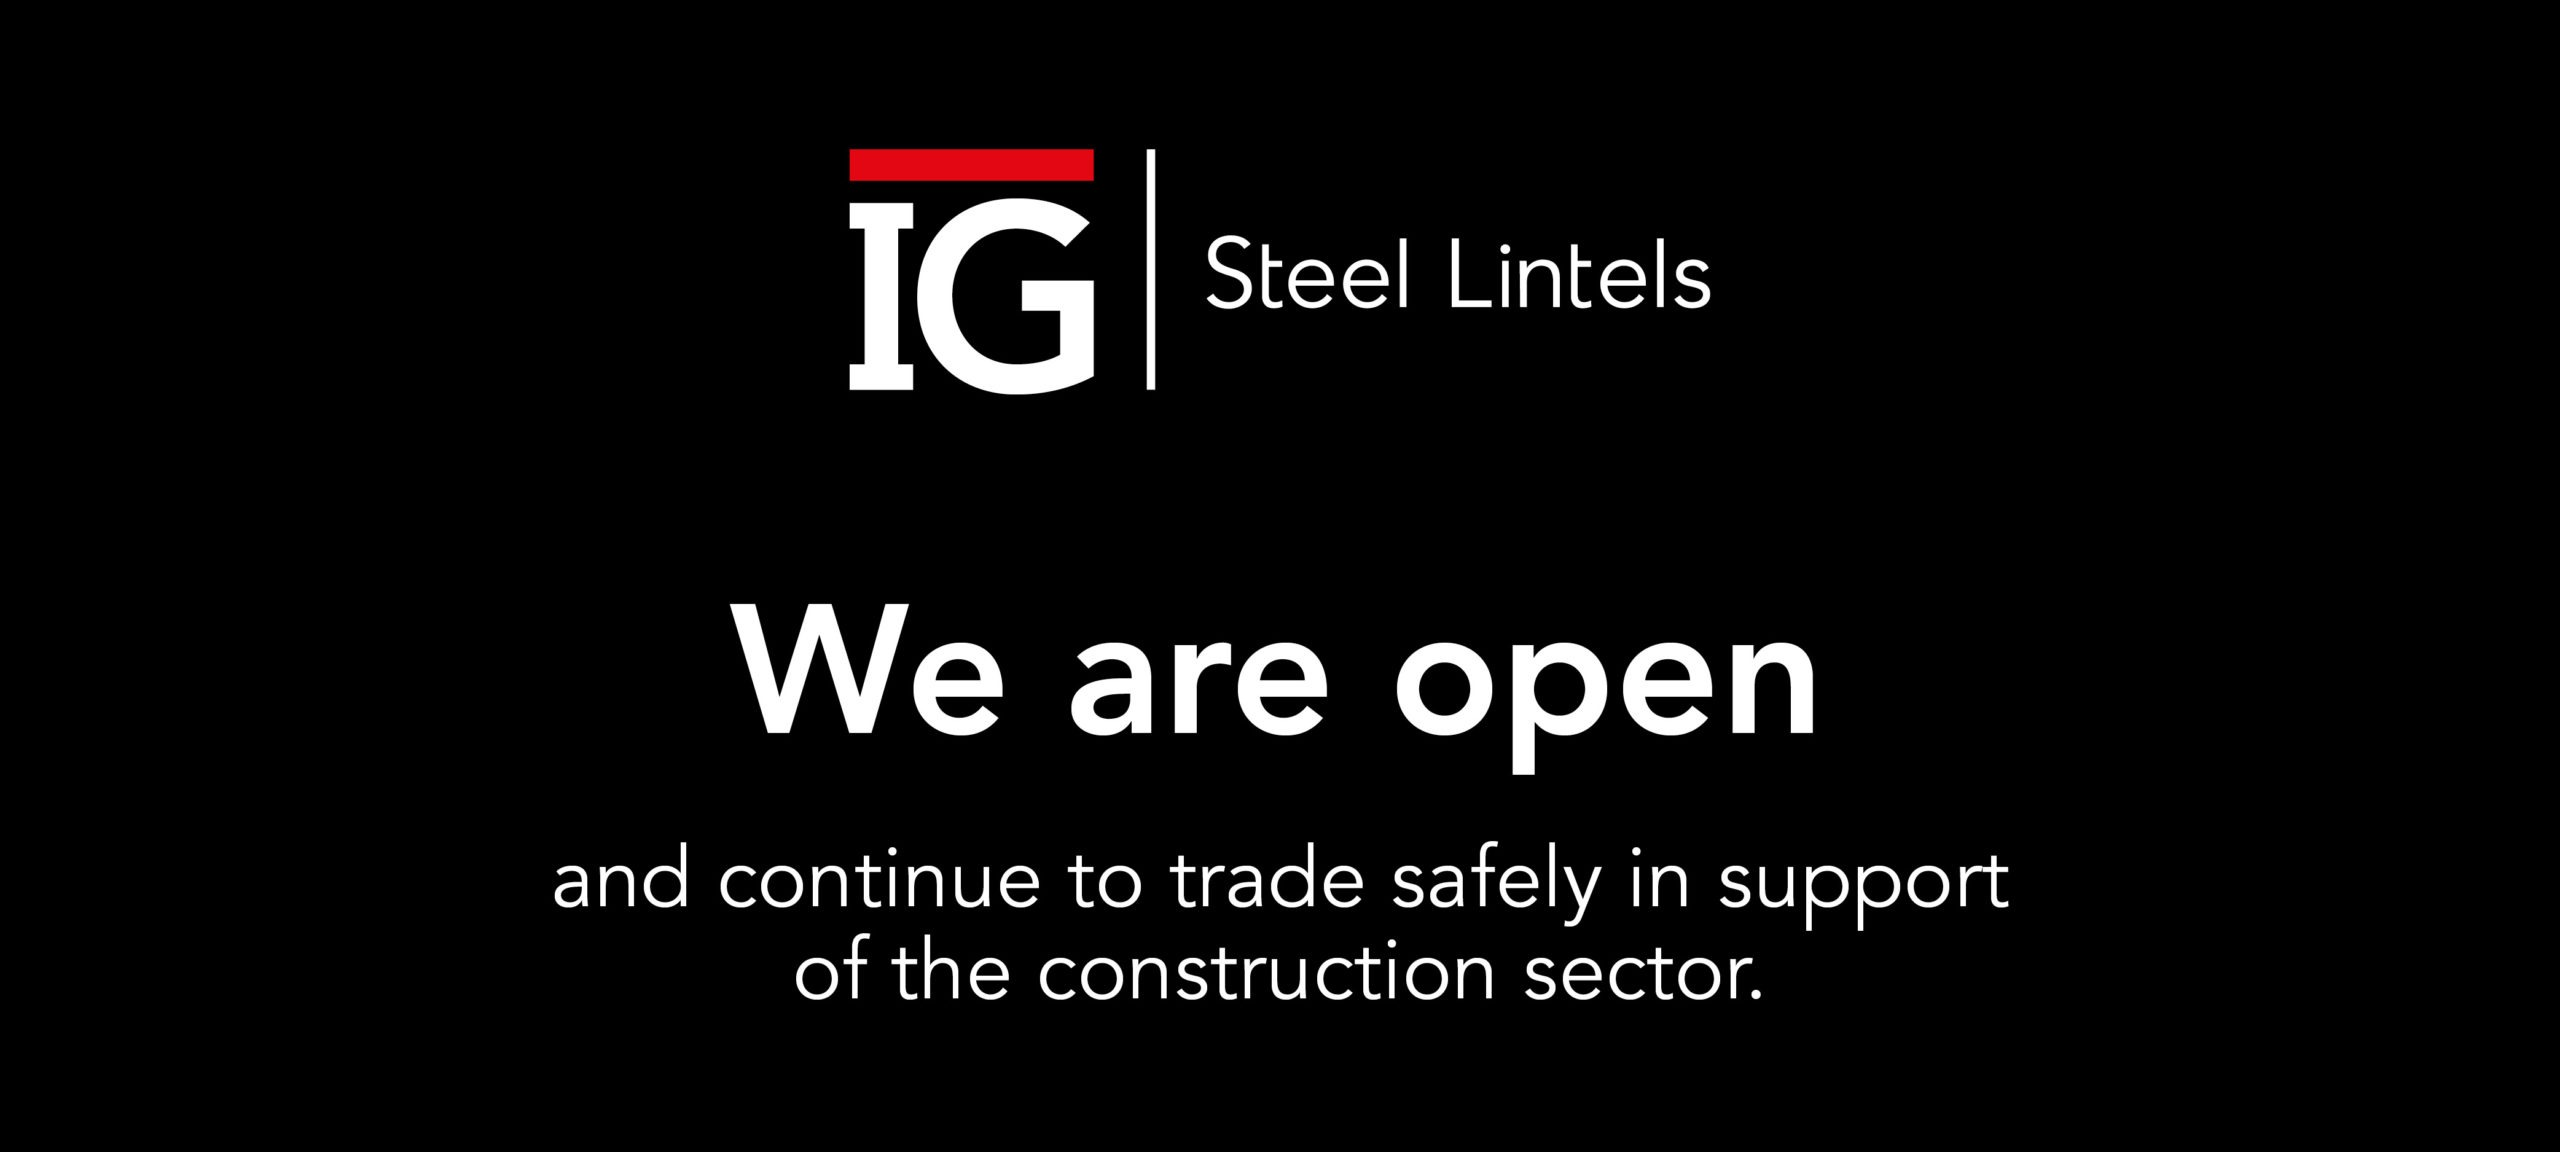 we are open and continue to trade safely